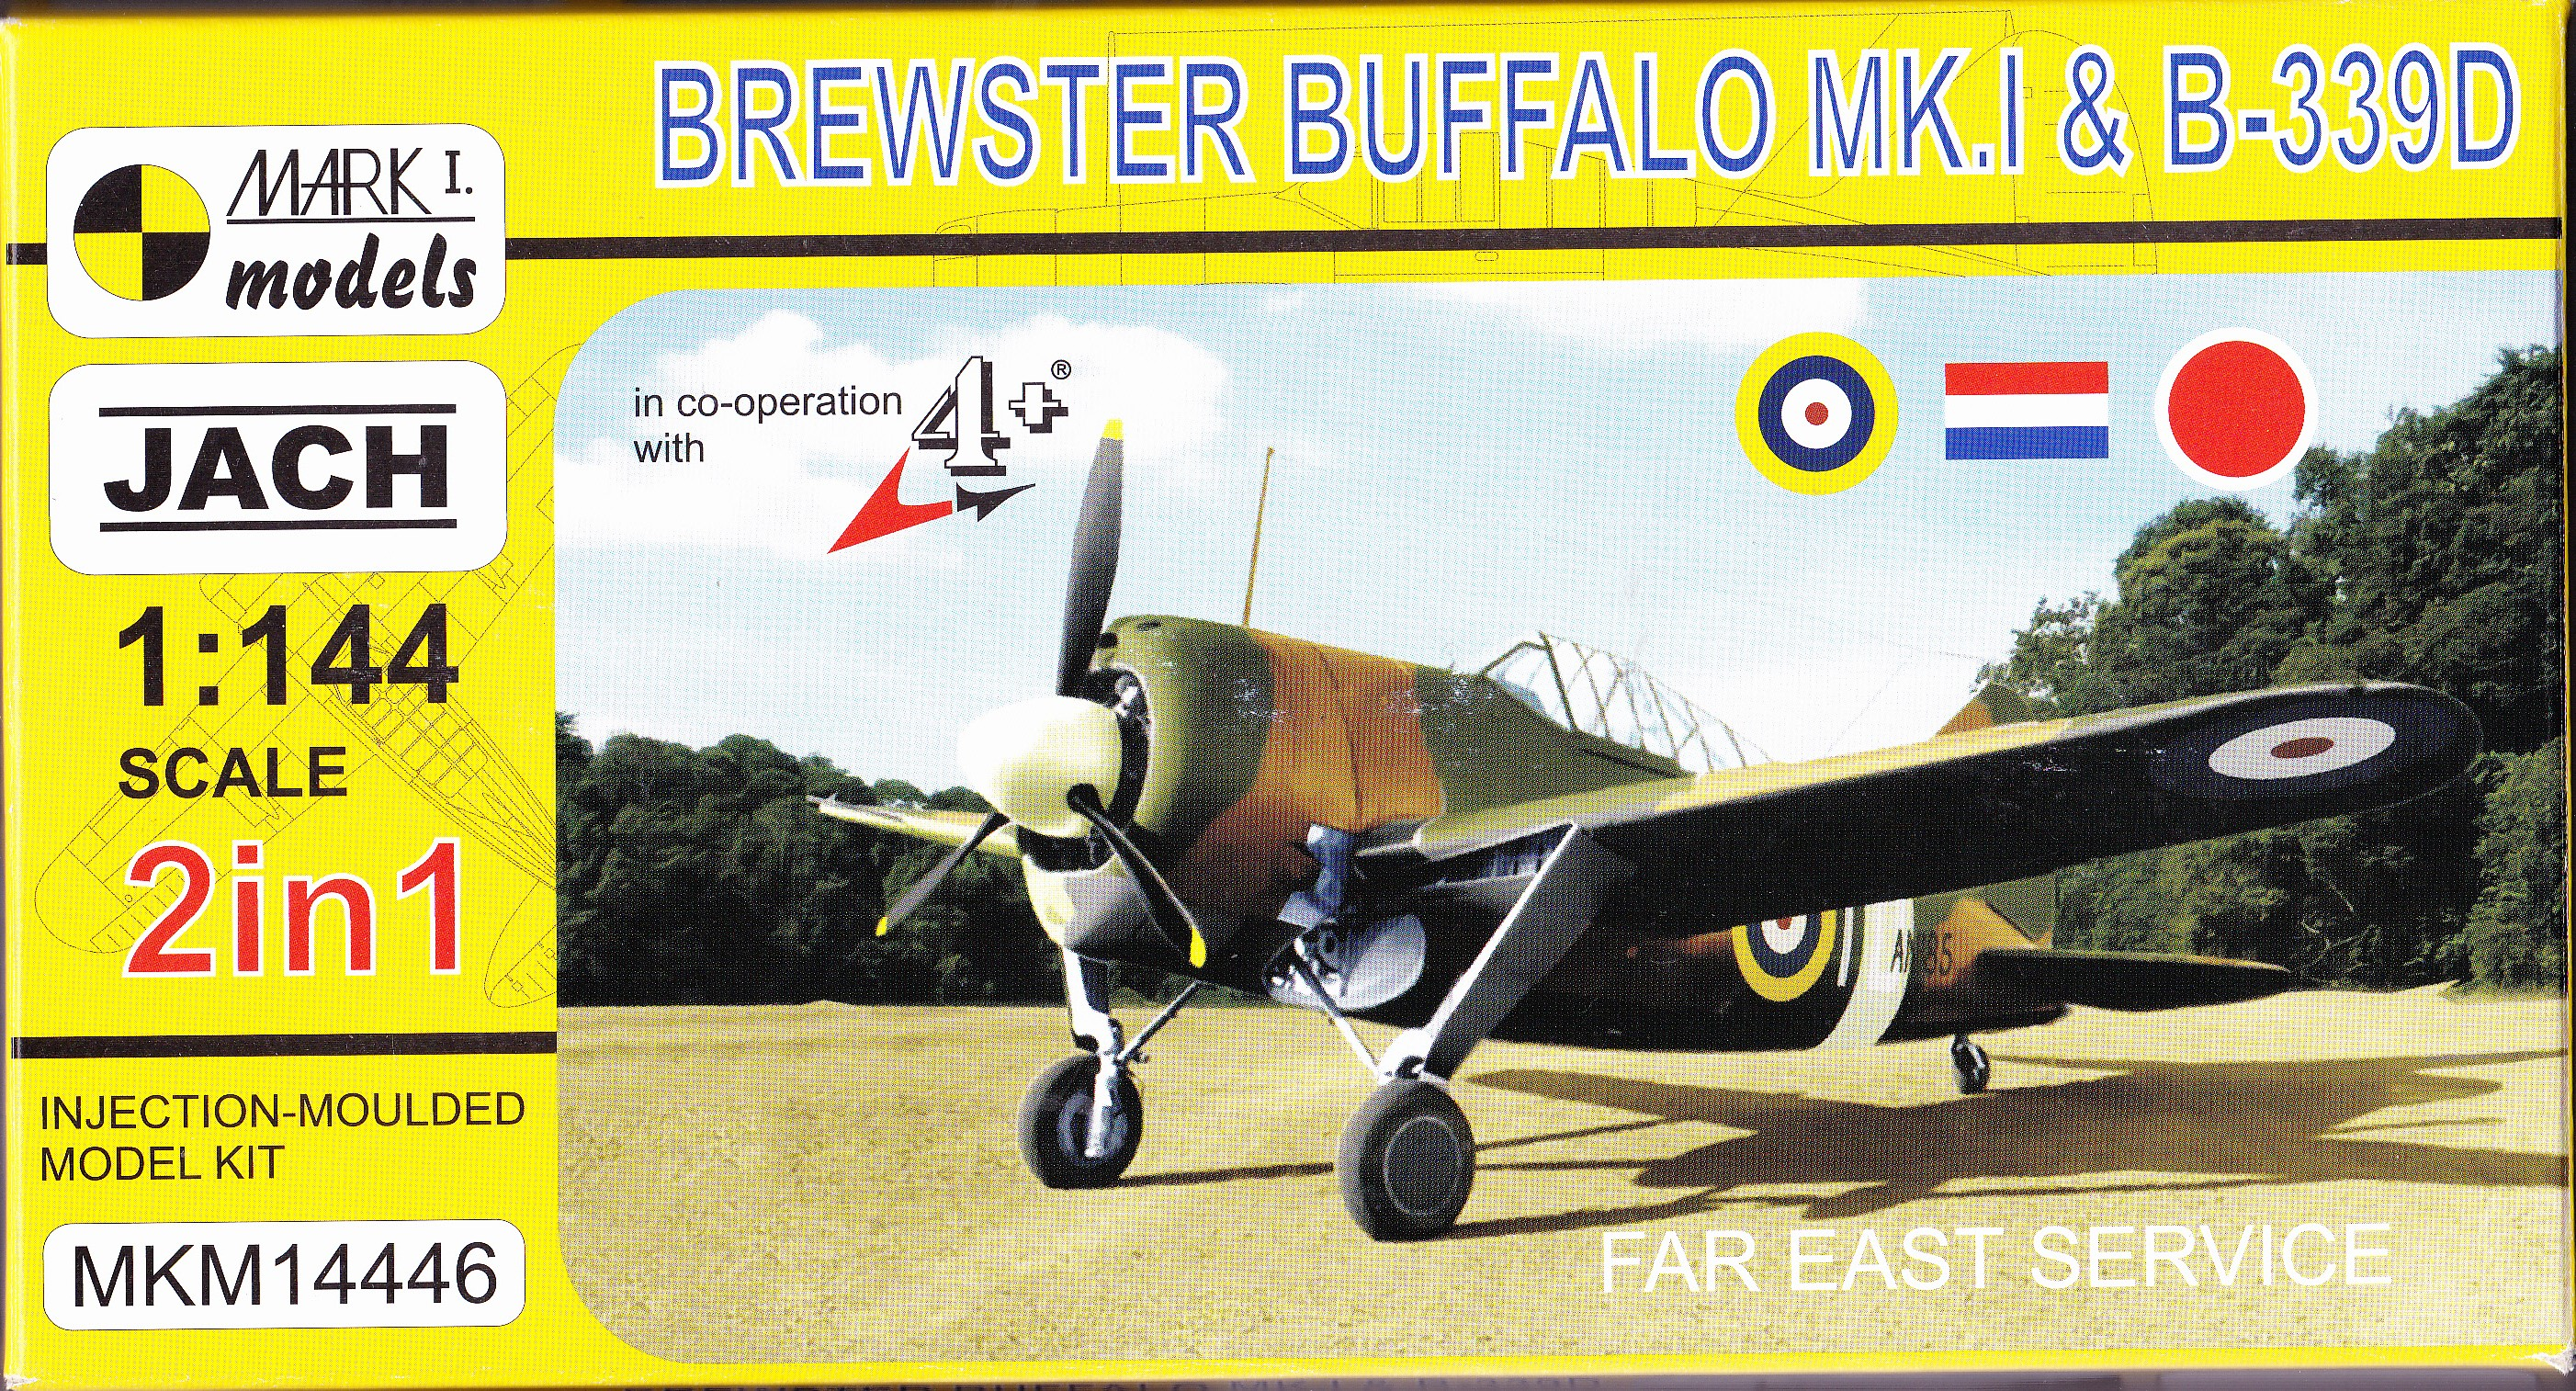 Brewster Buffalo Mk.I&B-339 2in1 1/144 Mark I.